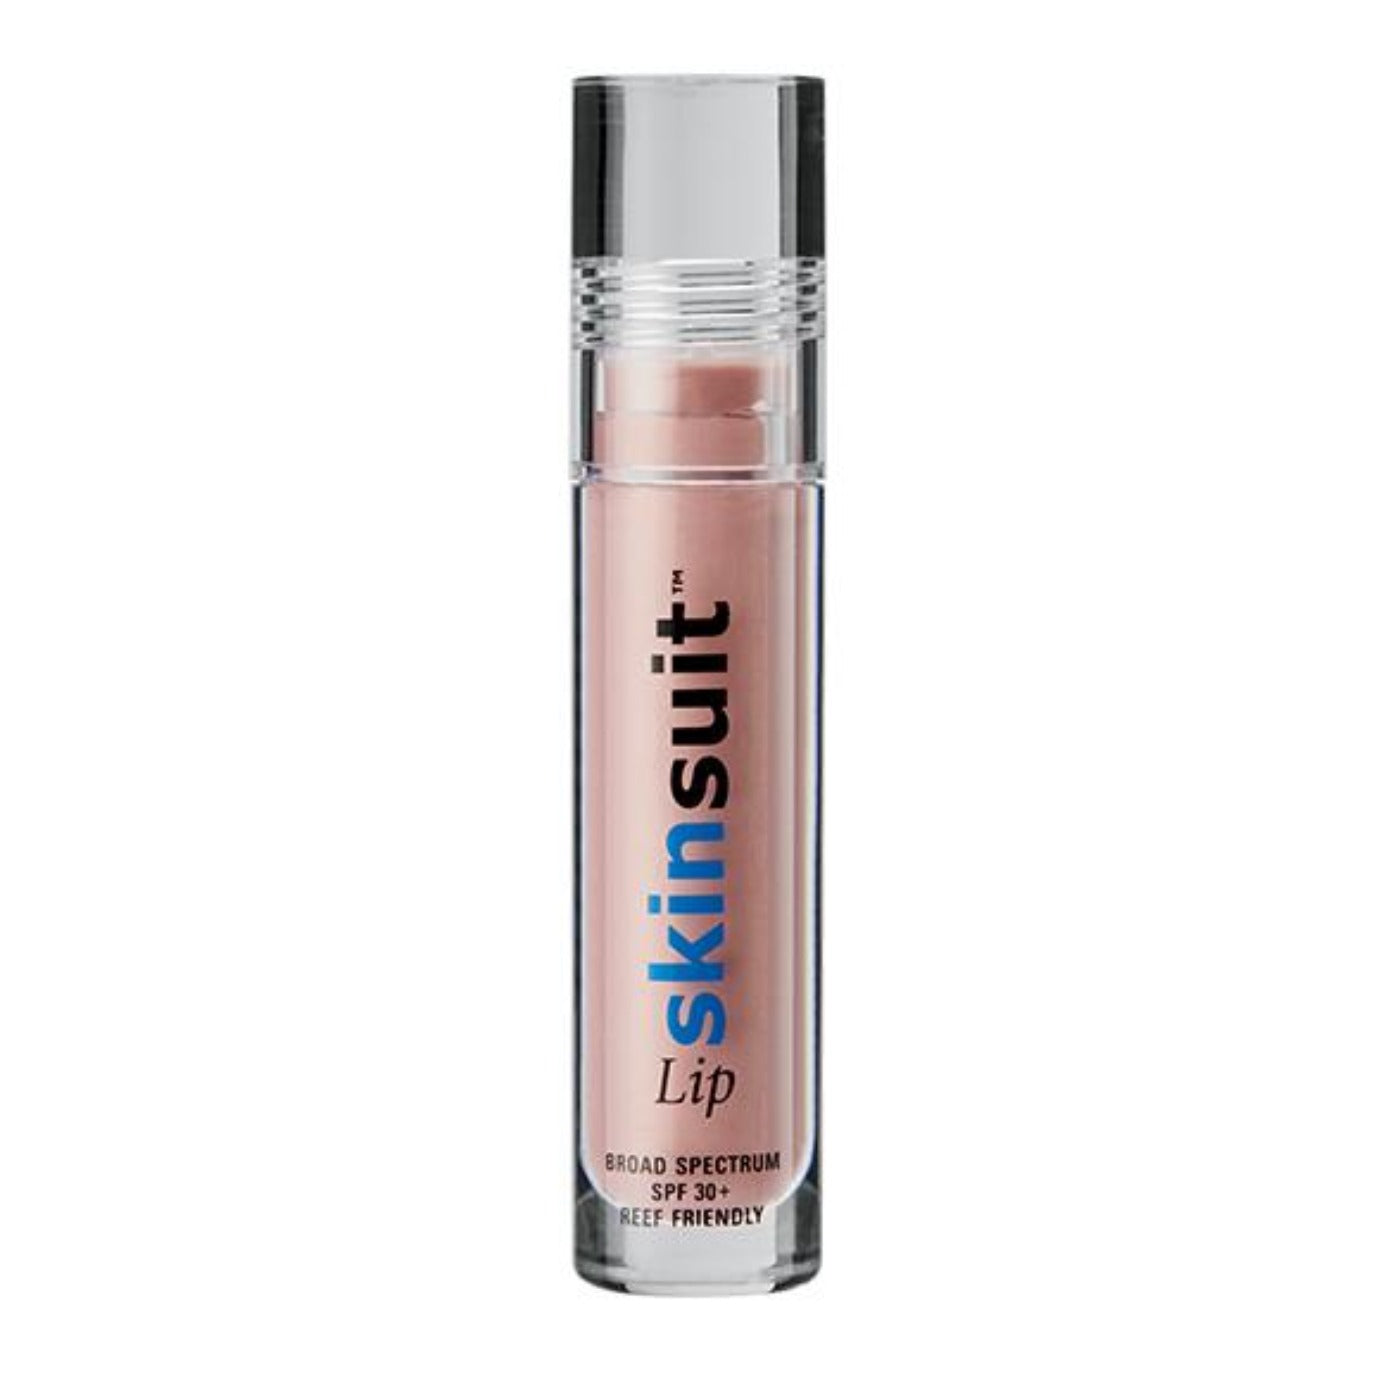 SkinSuit Lip SPF 30